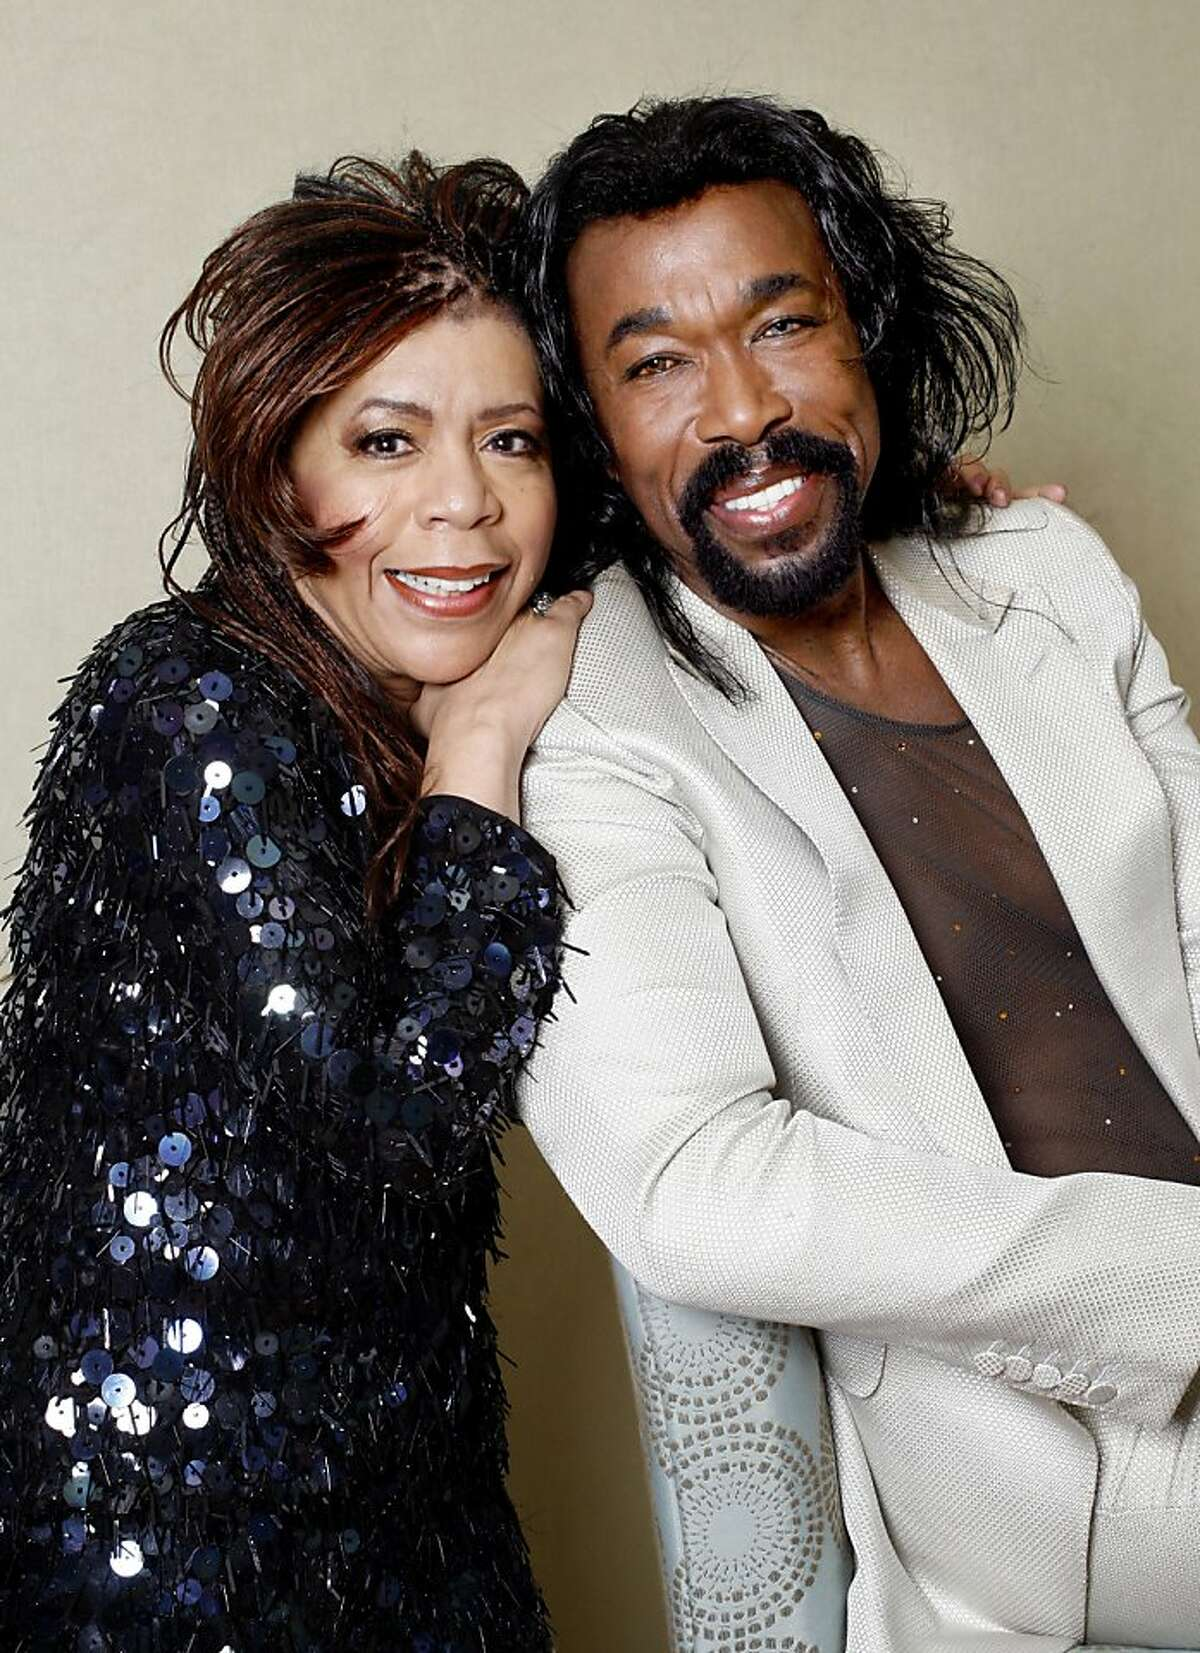 Valerie Simpson, left, and her husband Nikolas Ashford, right, are songwriters famous for